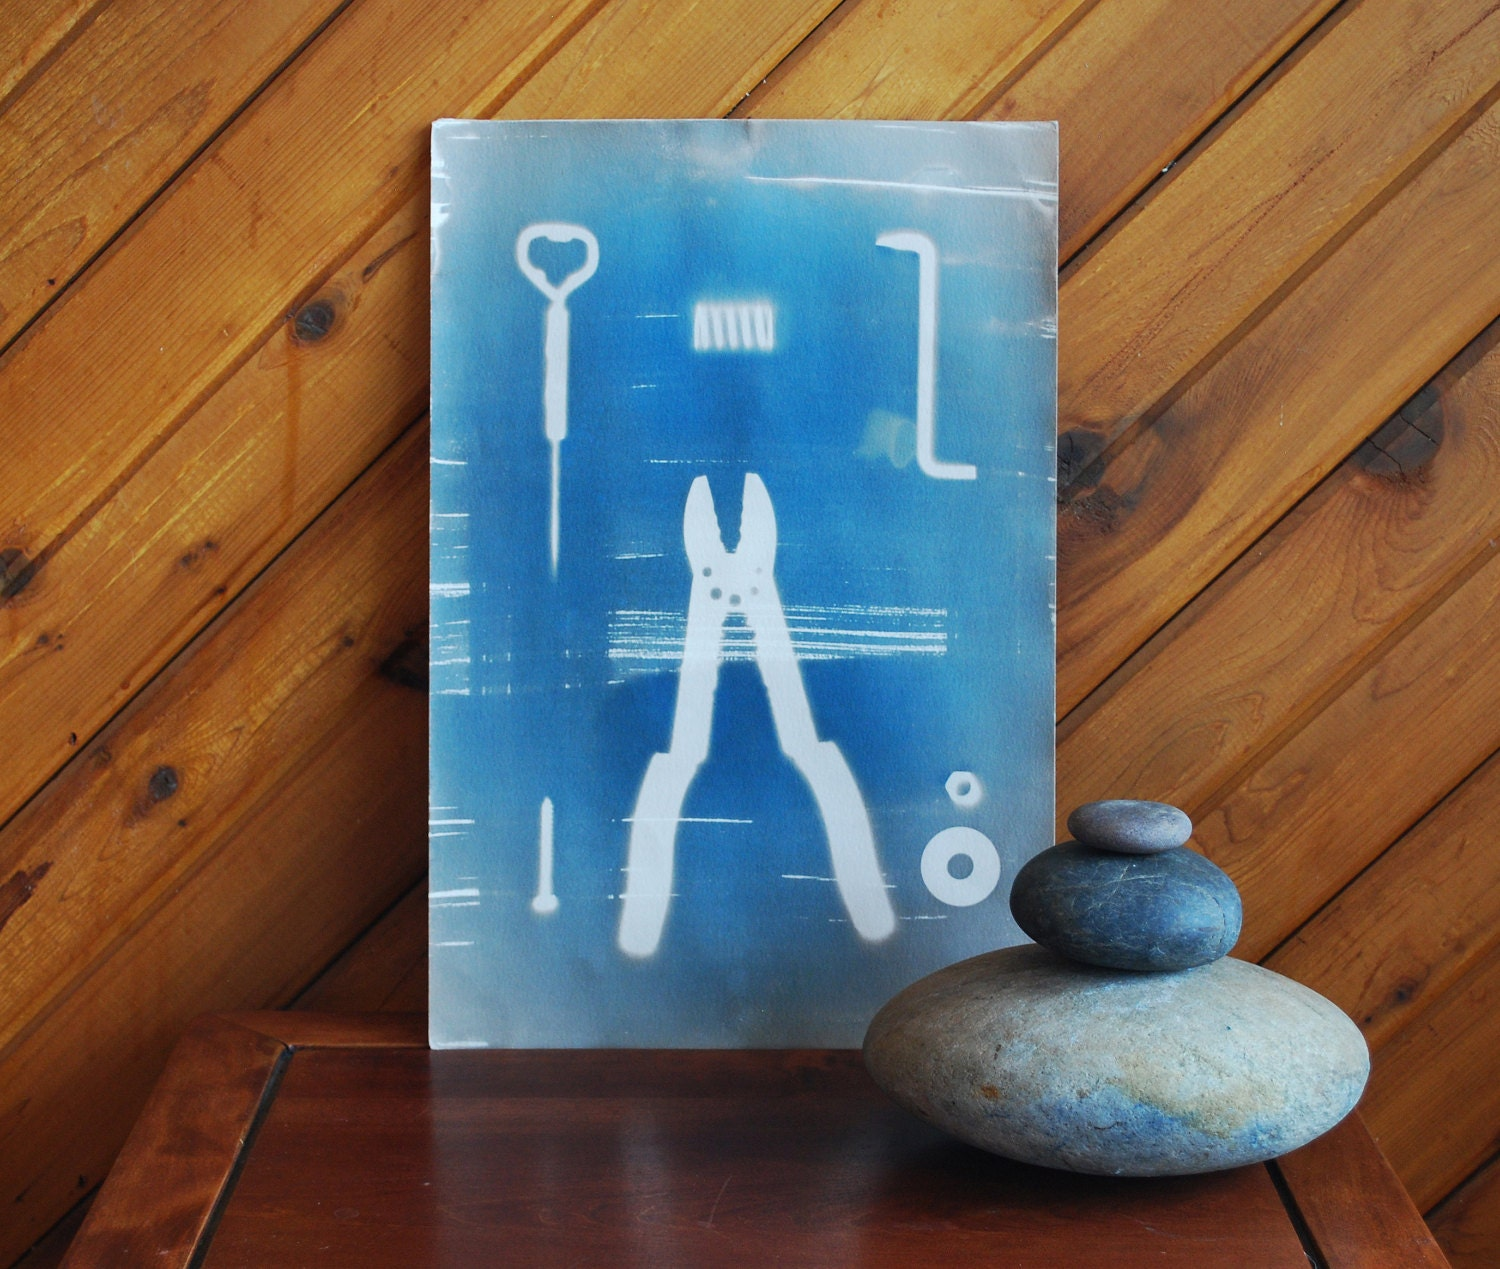 Man Cave Decor Etsy : Man cave decor cyanotypes set of prints industrial art